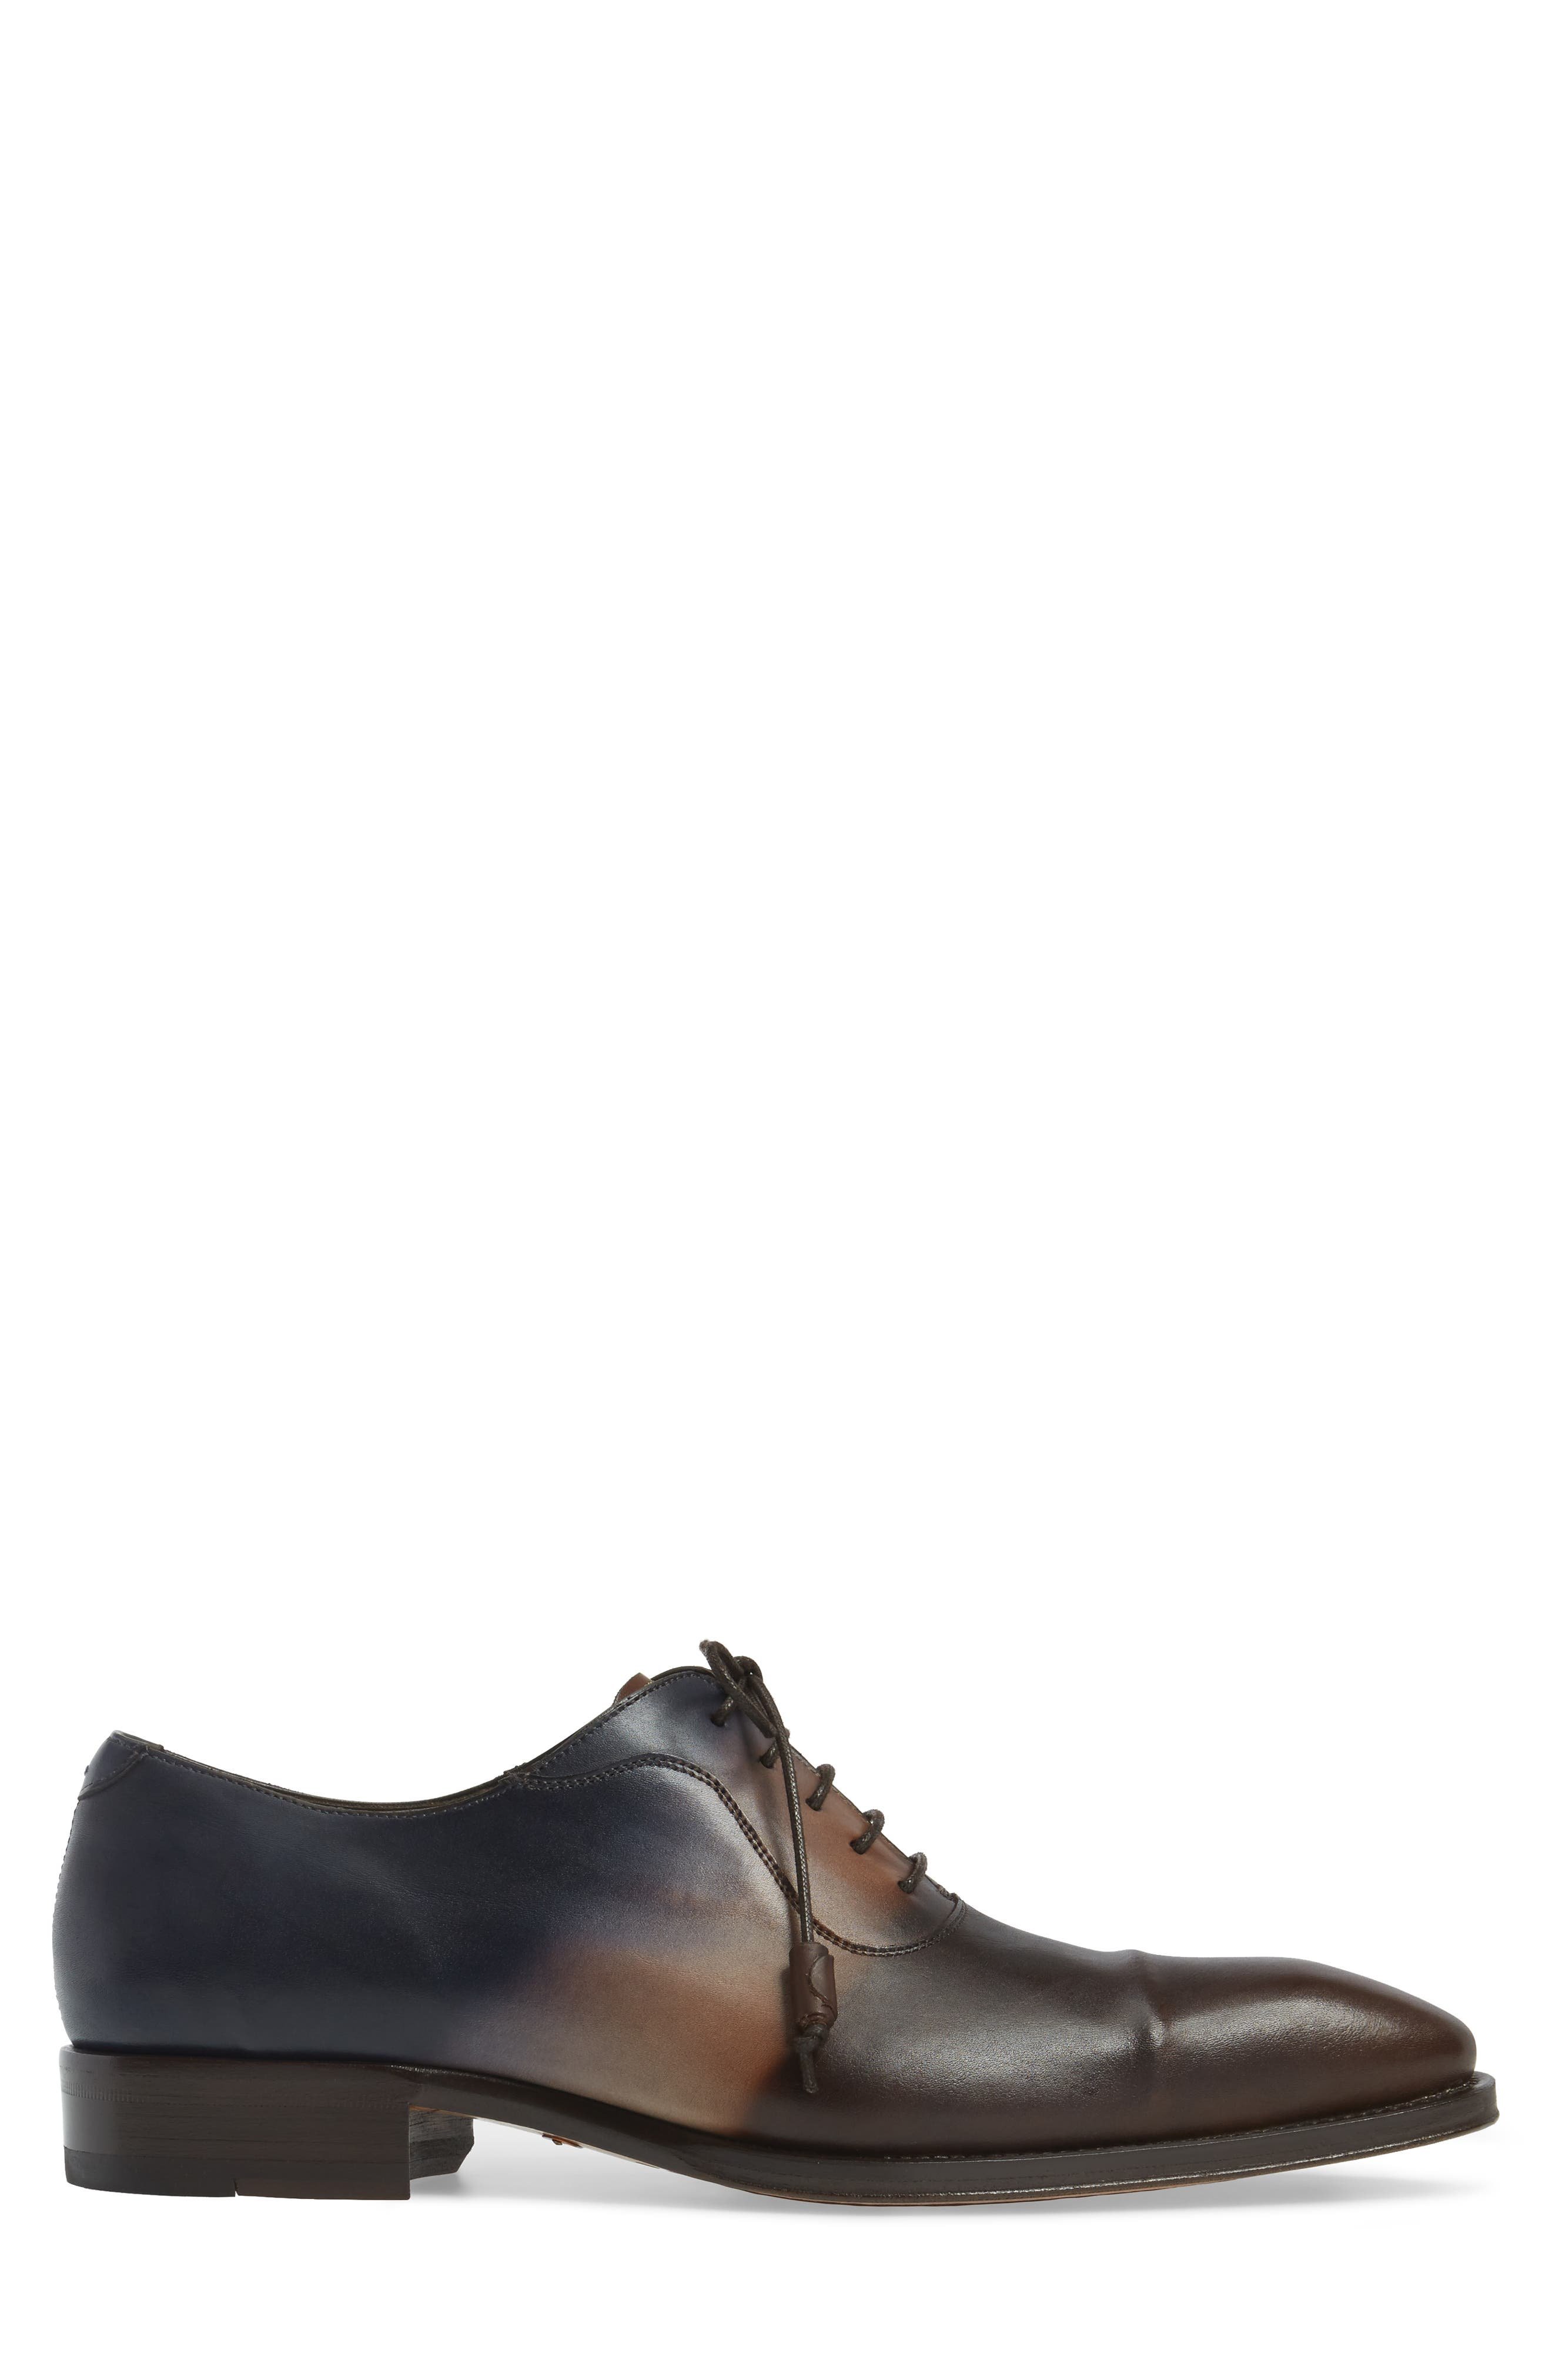 Millet Cap Toe Oxford,                             Alternate thumbnail 3, color,                             Brown Multi Leather